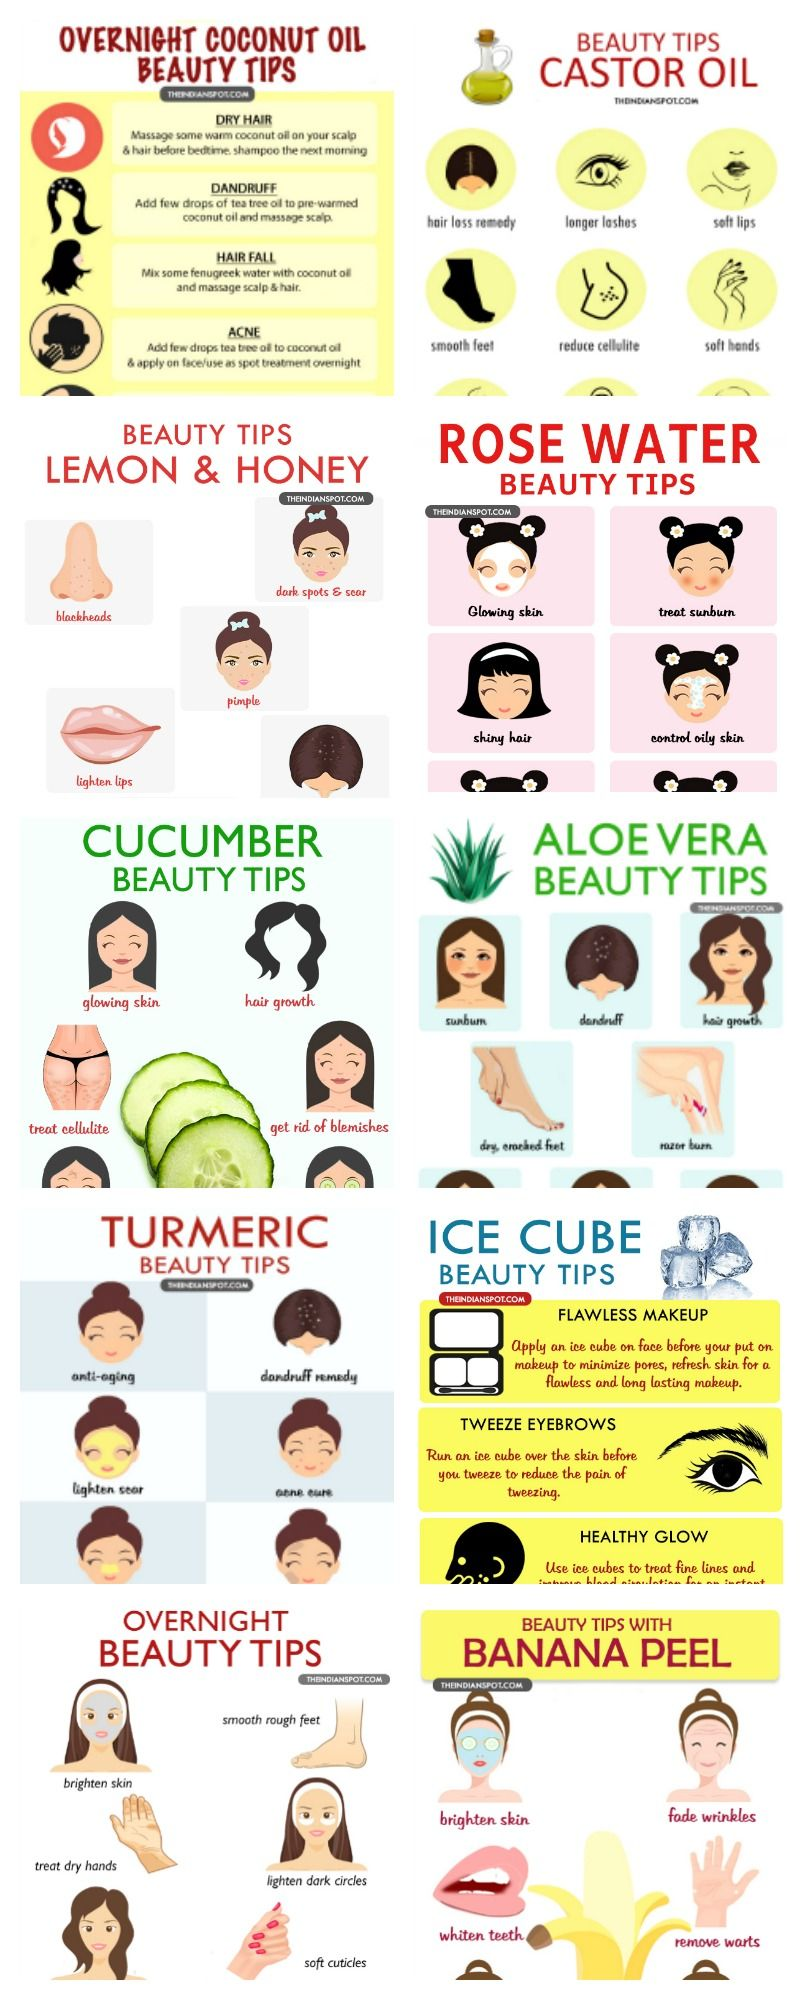 AMAZING ALL NATURAL BEAUTY TIPS  Overnight beauty, Natural beauty